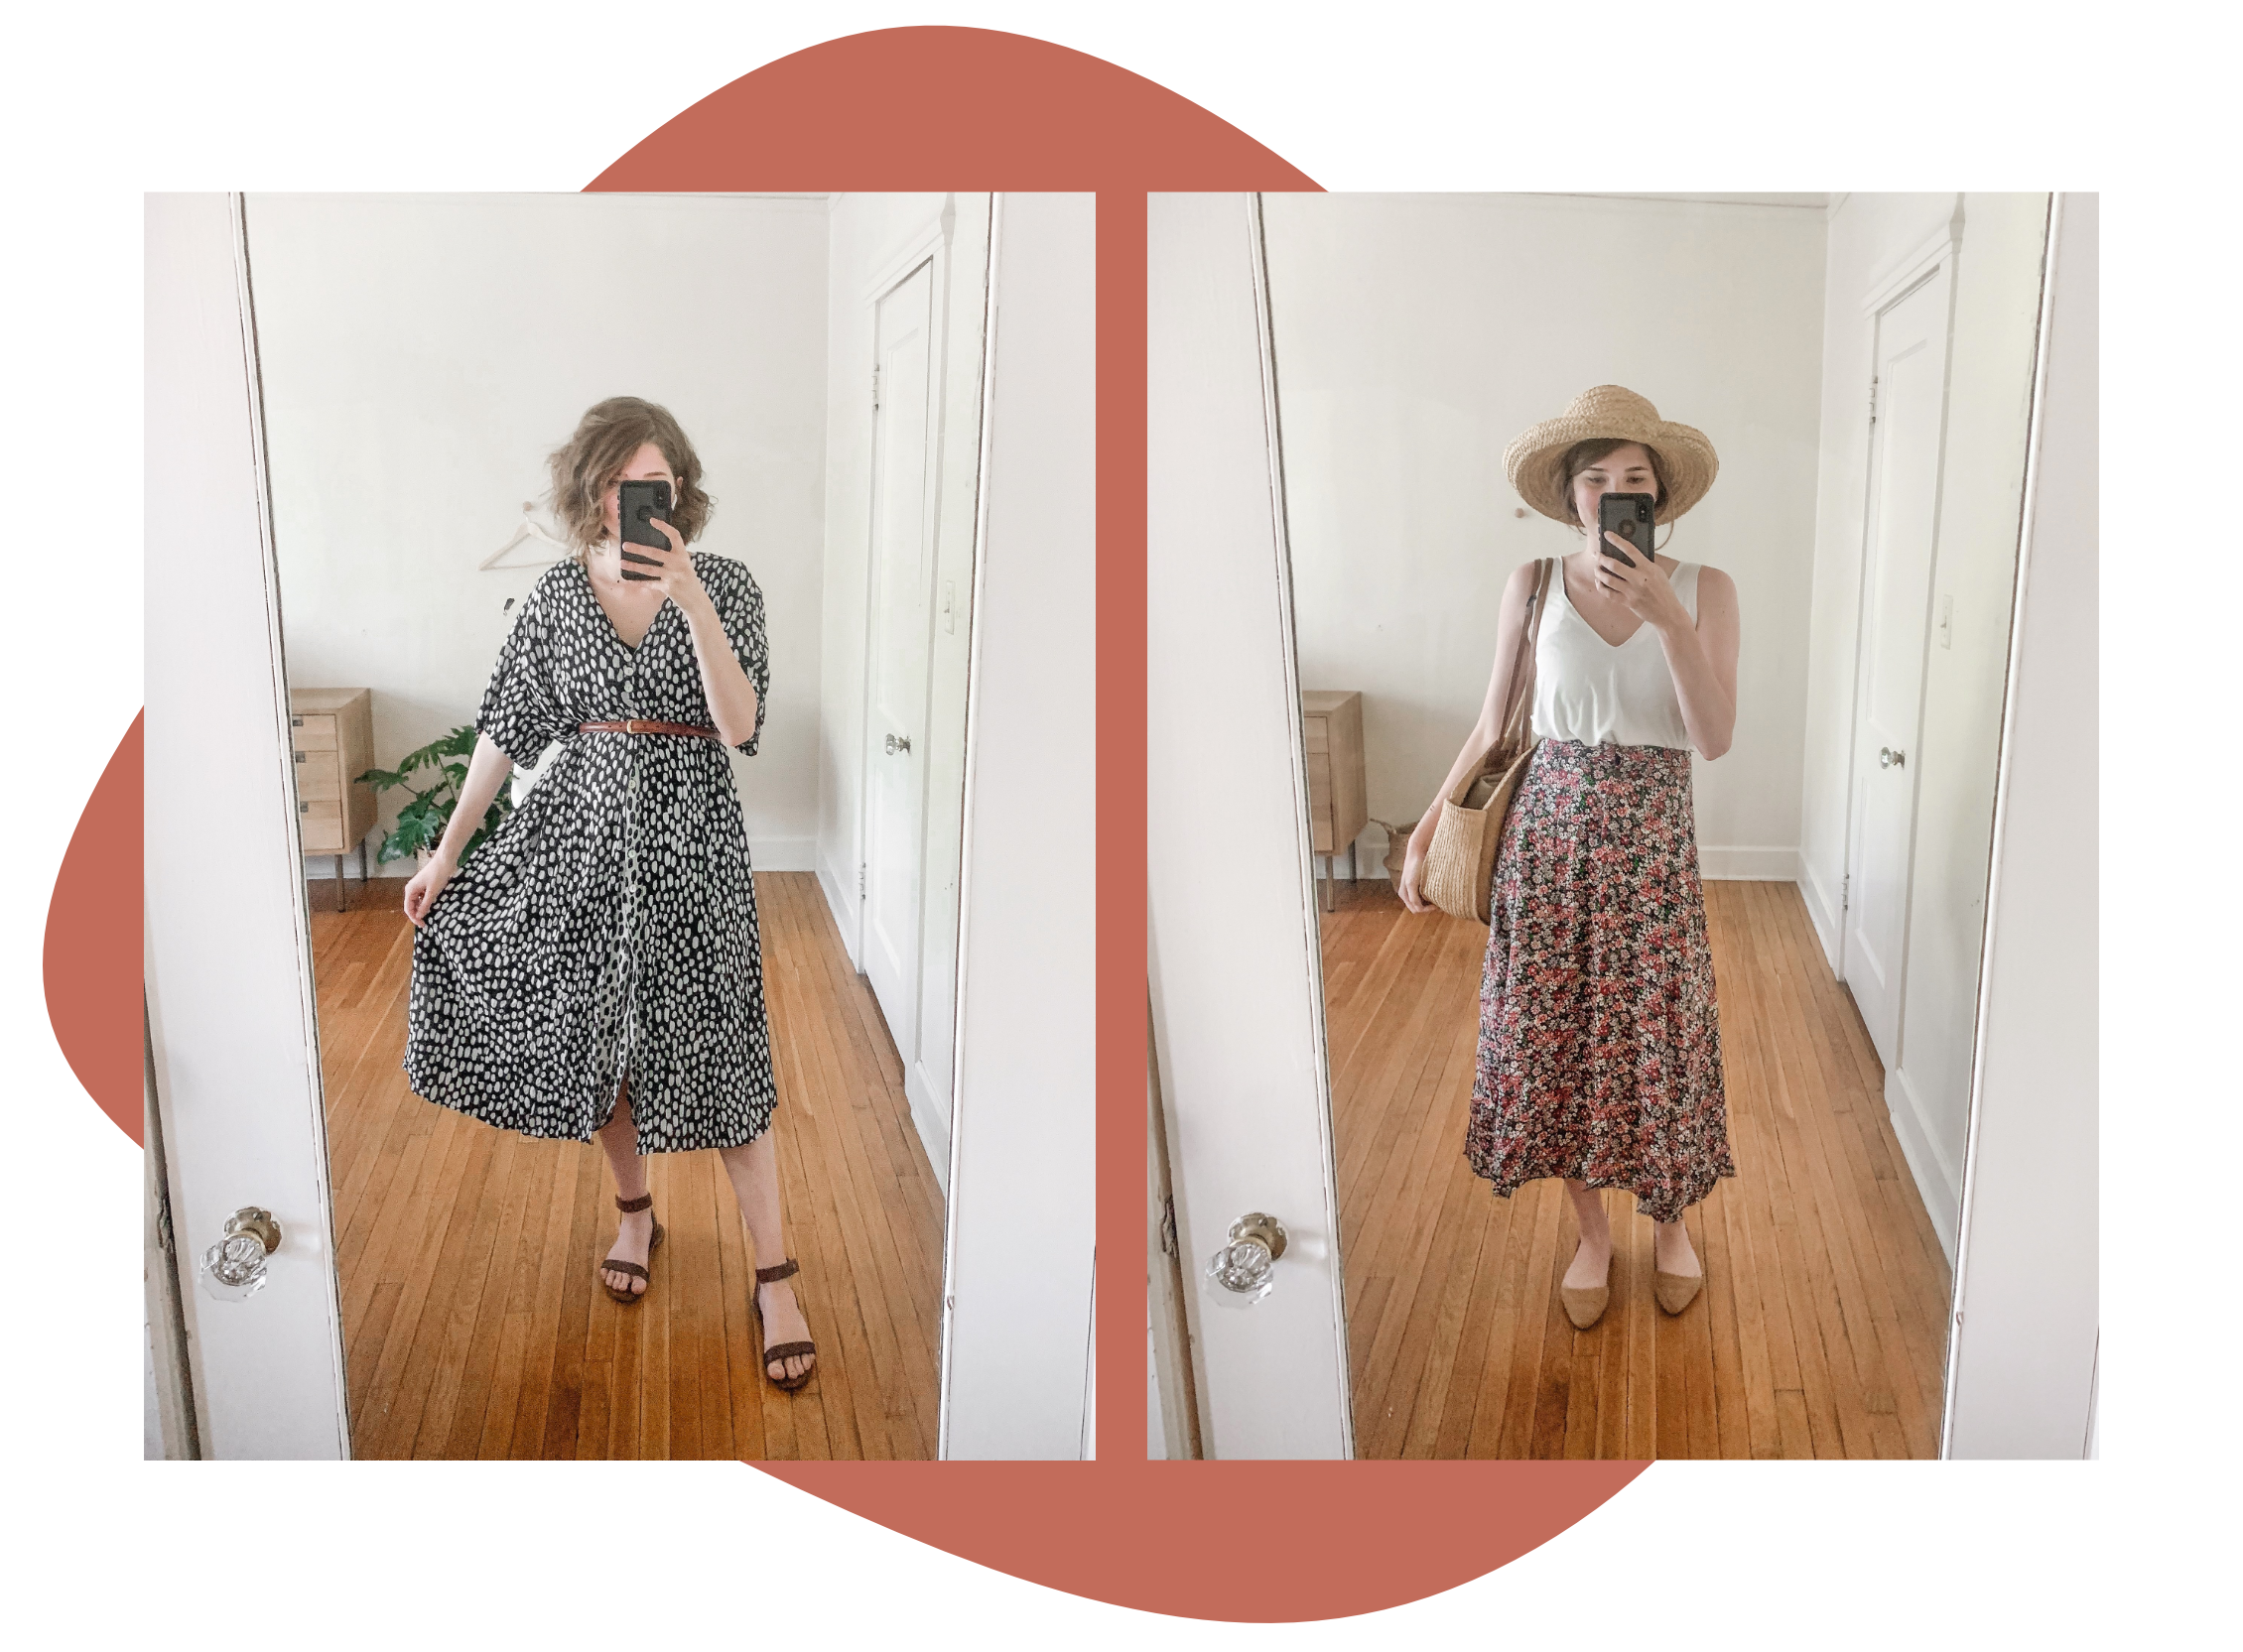 Recently found this dress and floral skirt at Goodwill. Hat was also a thrift find!